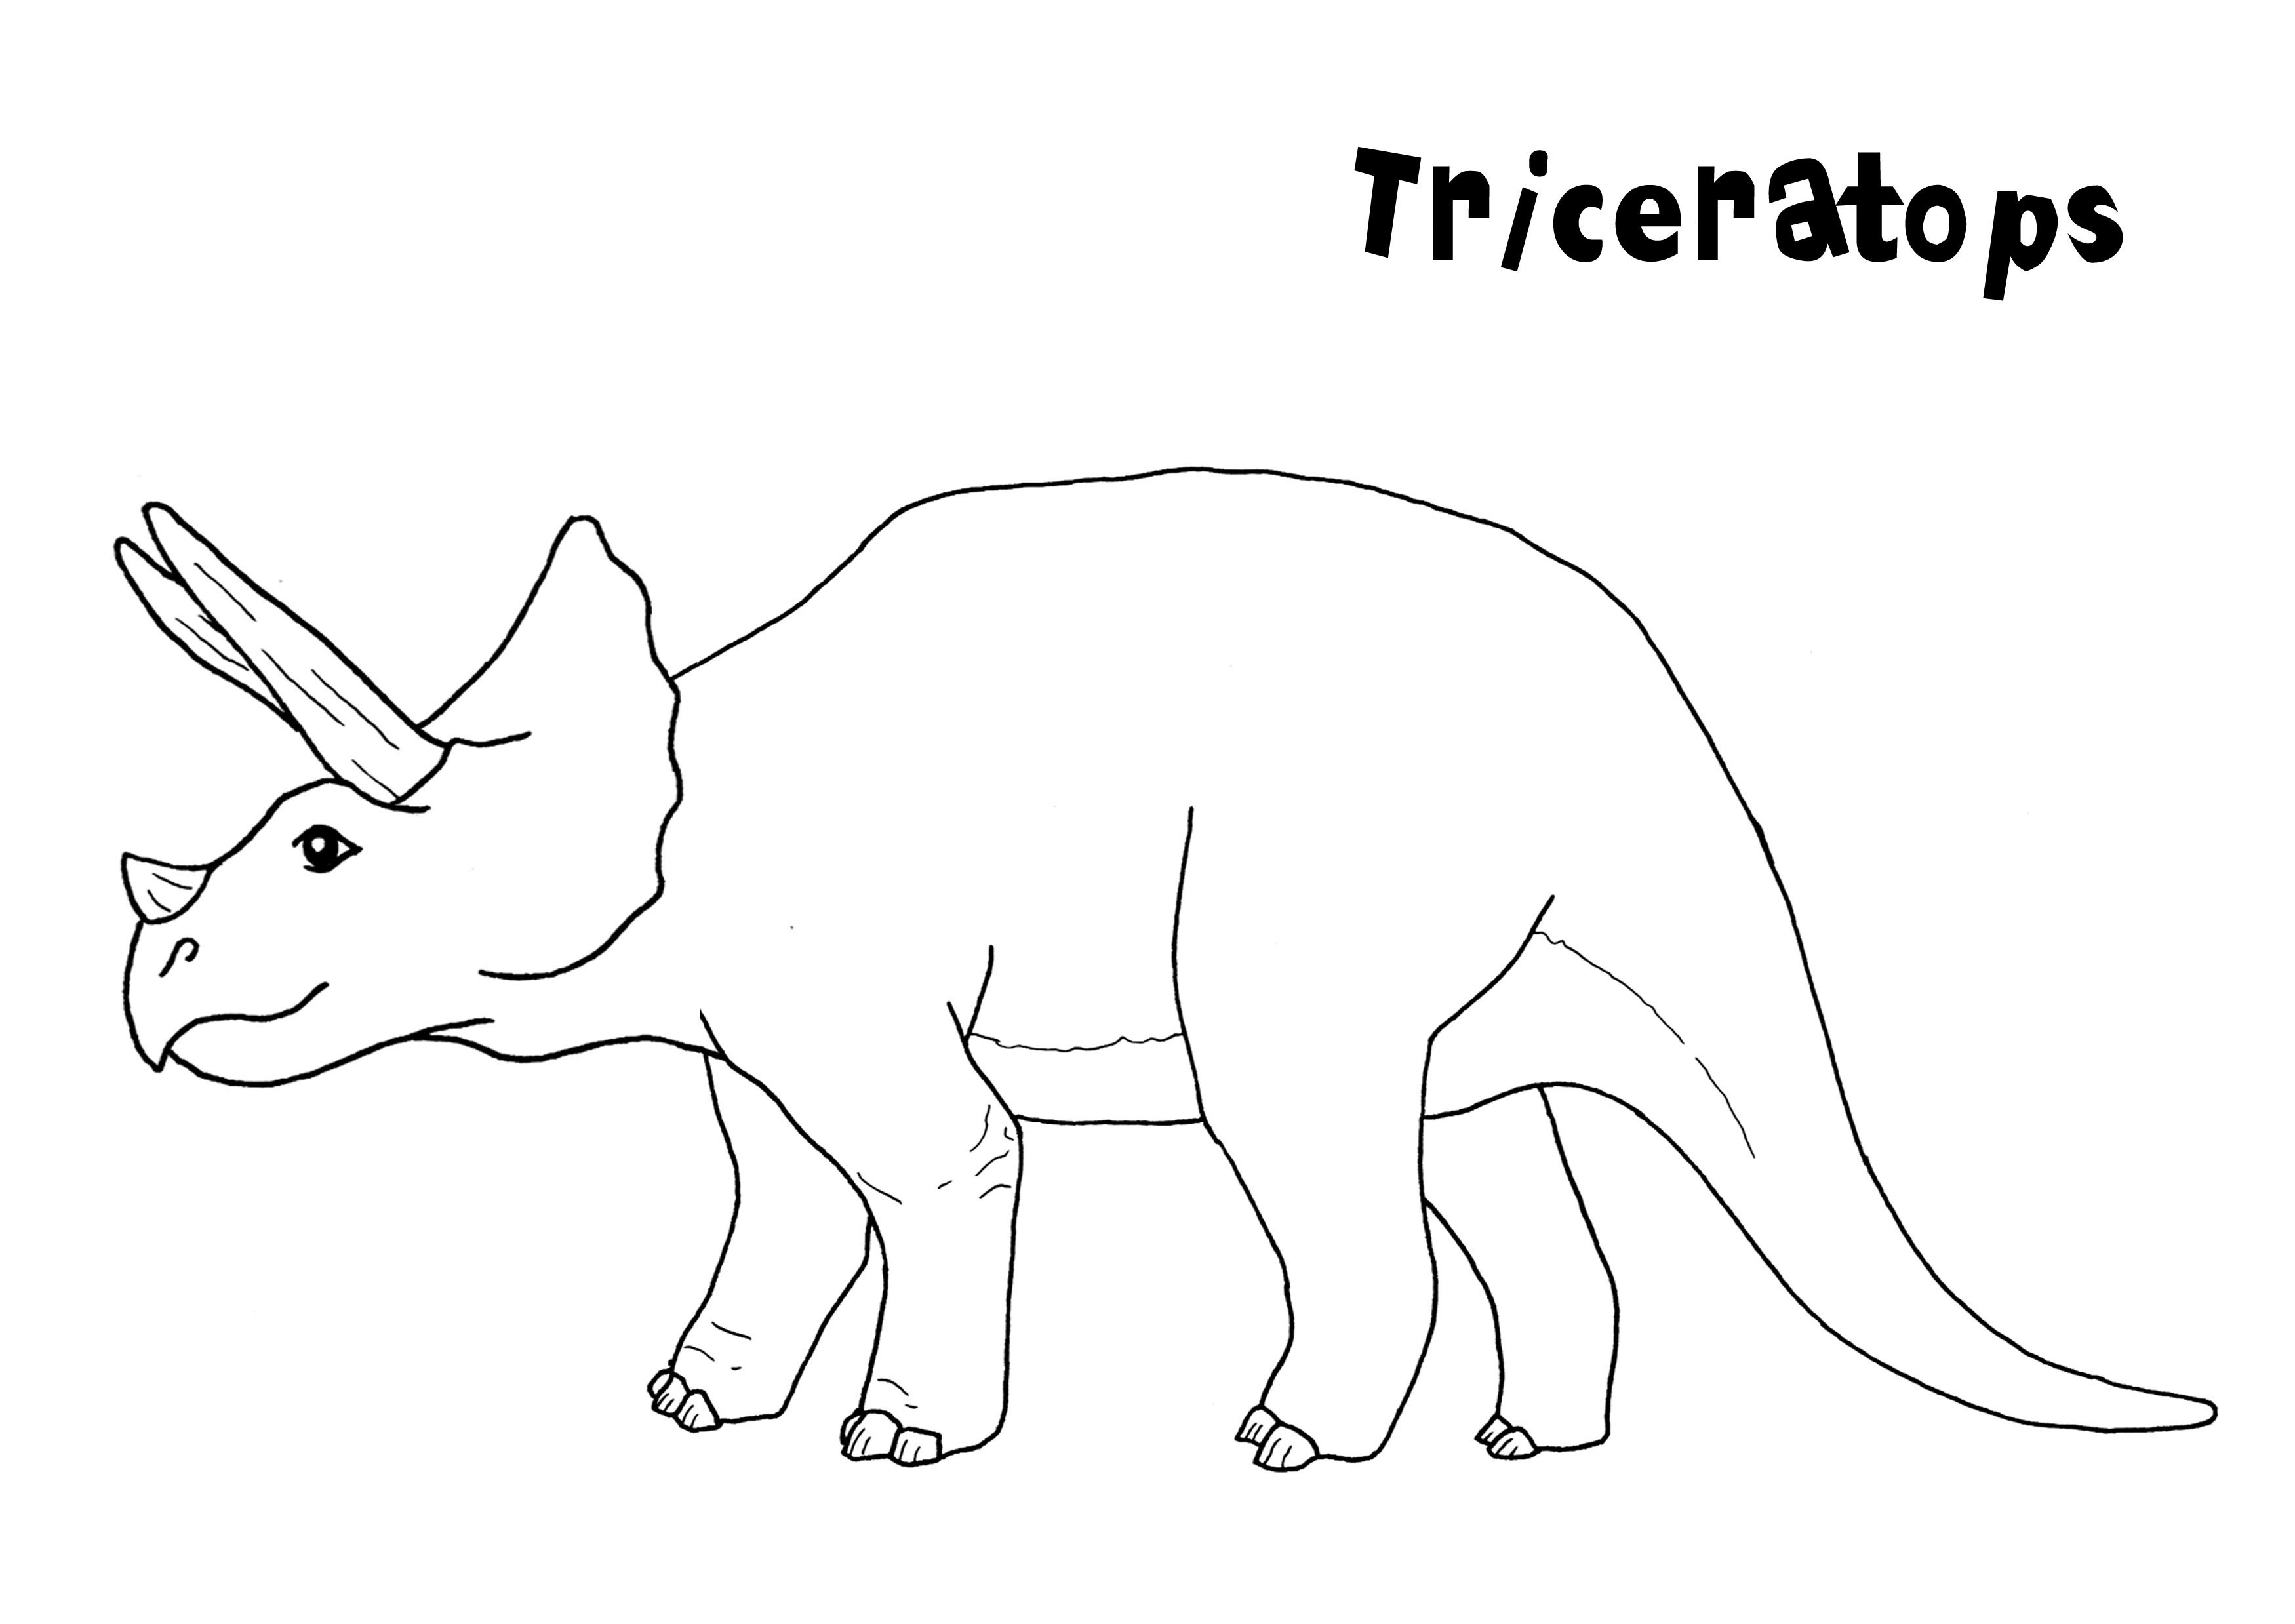 Triceratops coloring page for kids